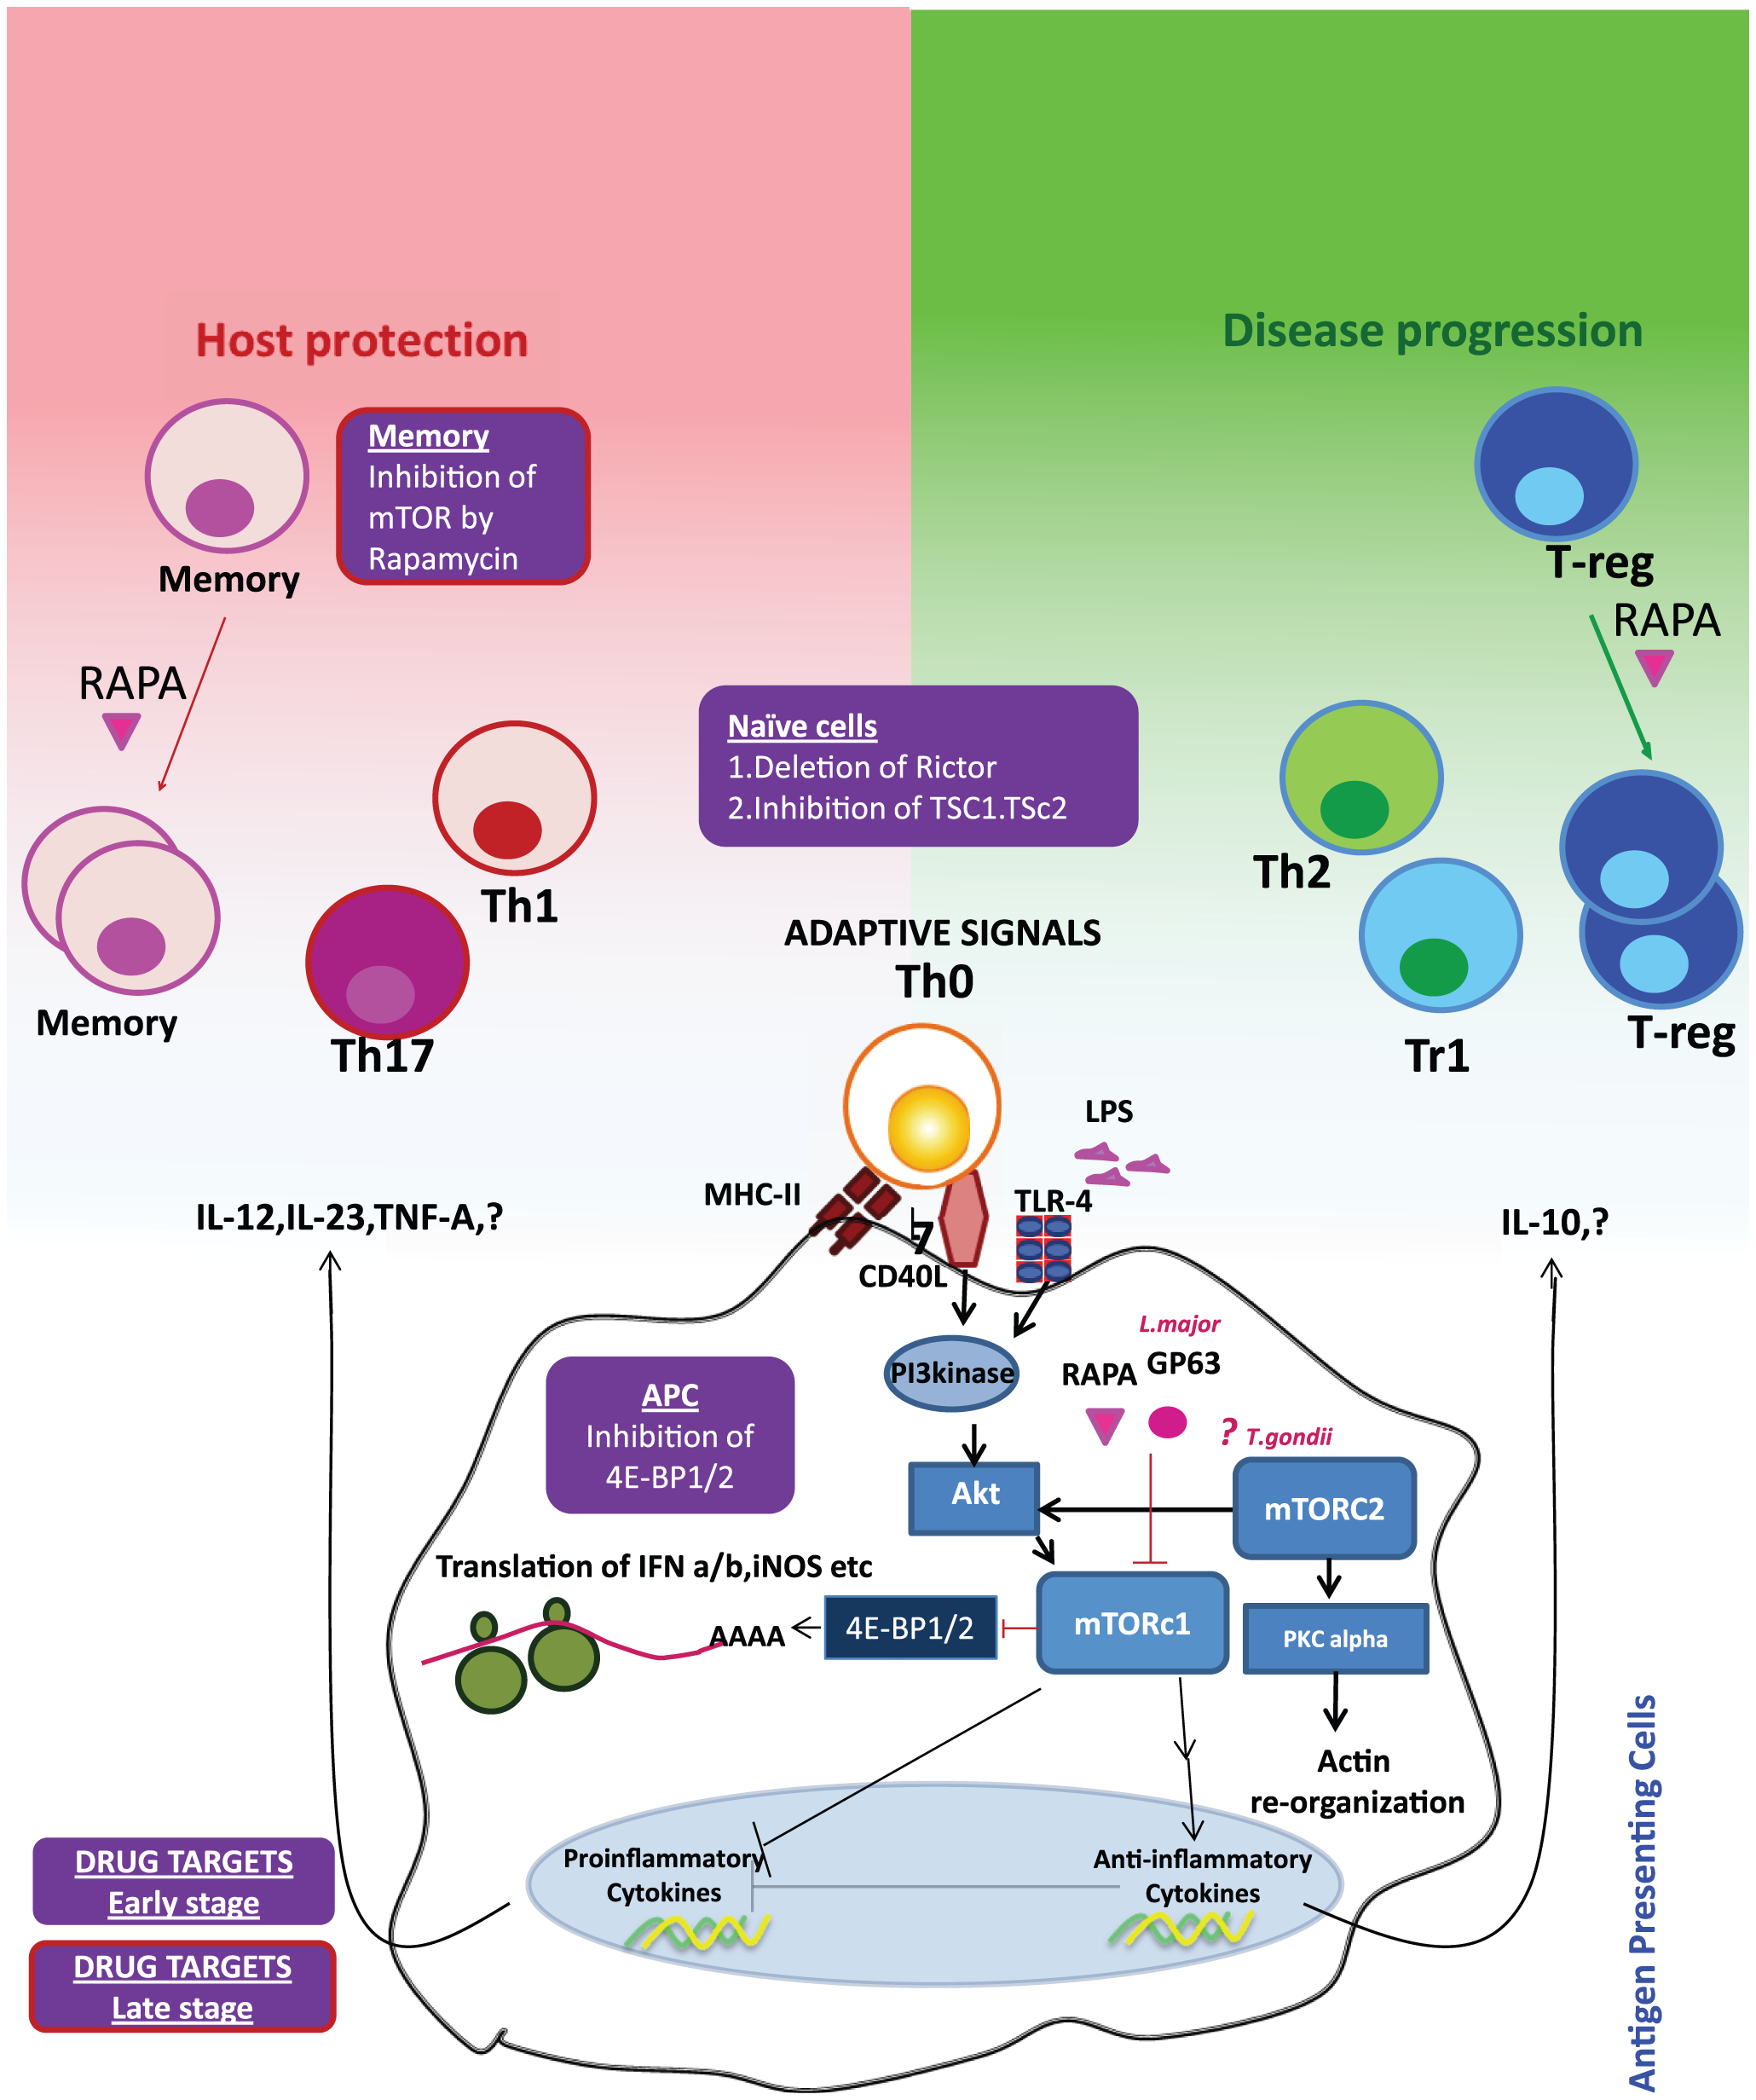 Reciprocal consequences of mTOR activation in APCs and T cells may be host protective or disease promotive.